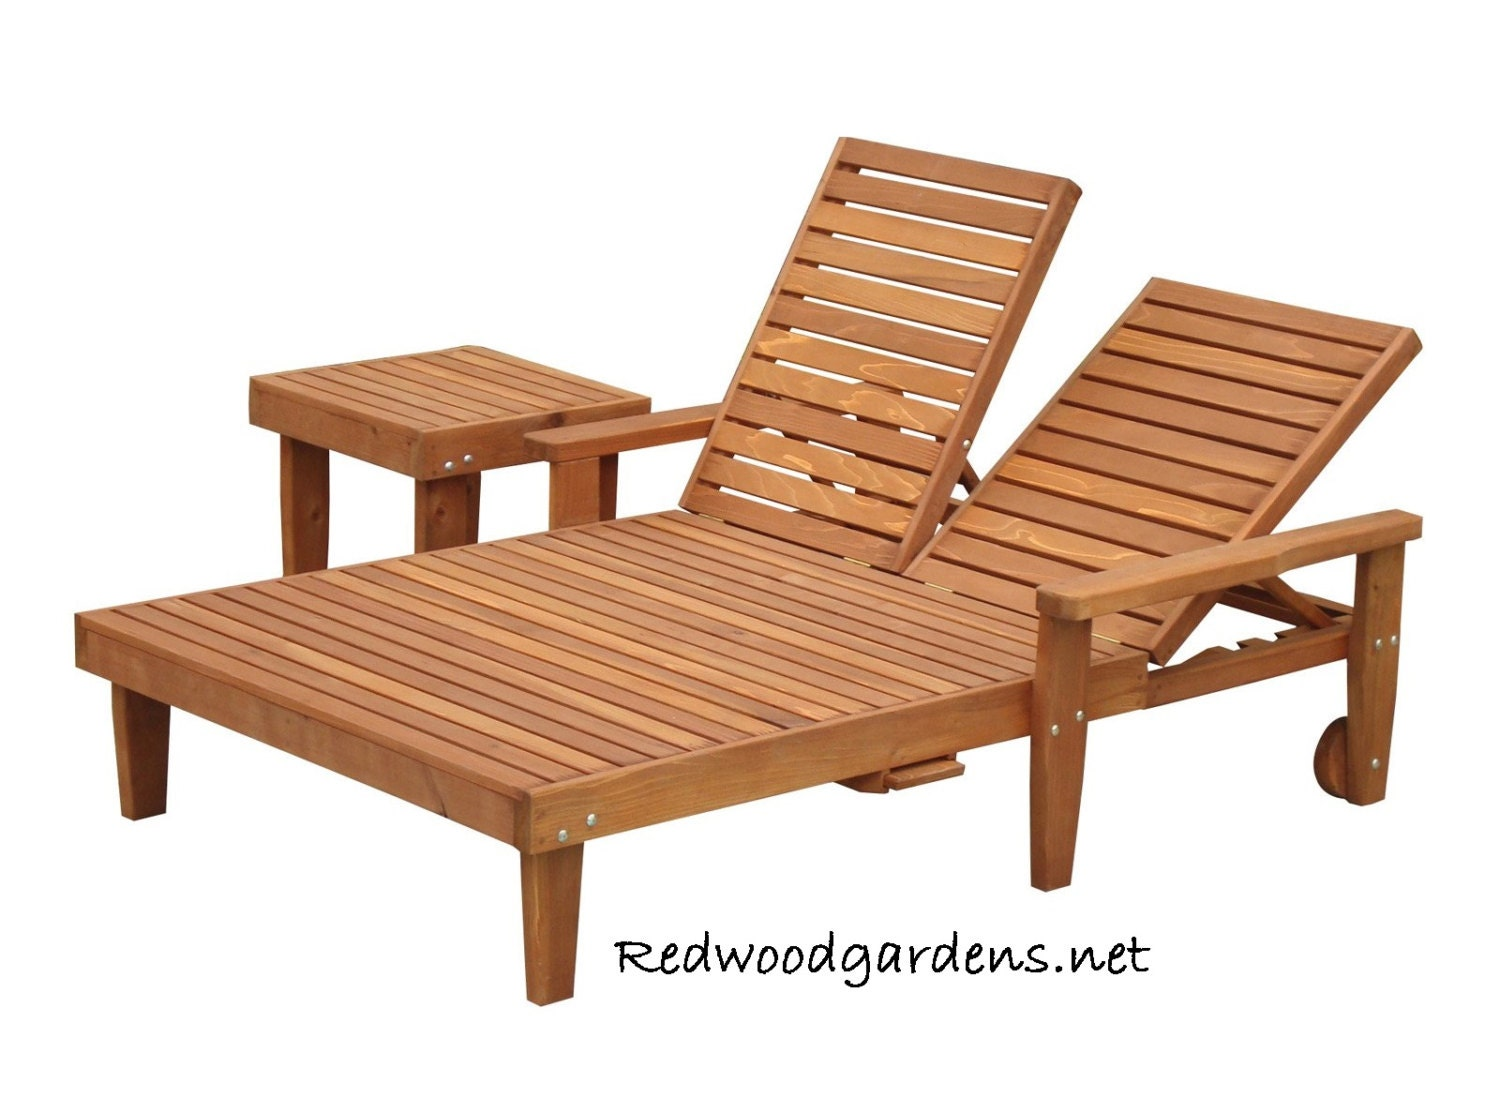 Double Chaise Lounge Reclinable for Pool Patio by RedwoodGardens